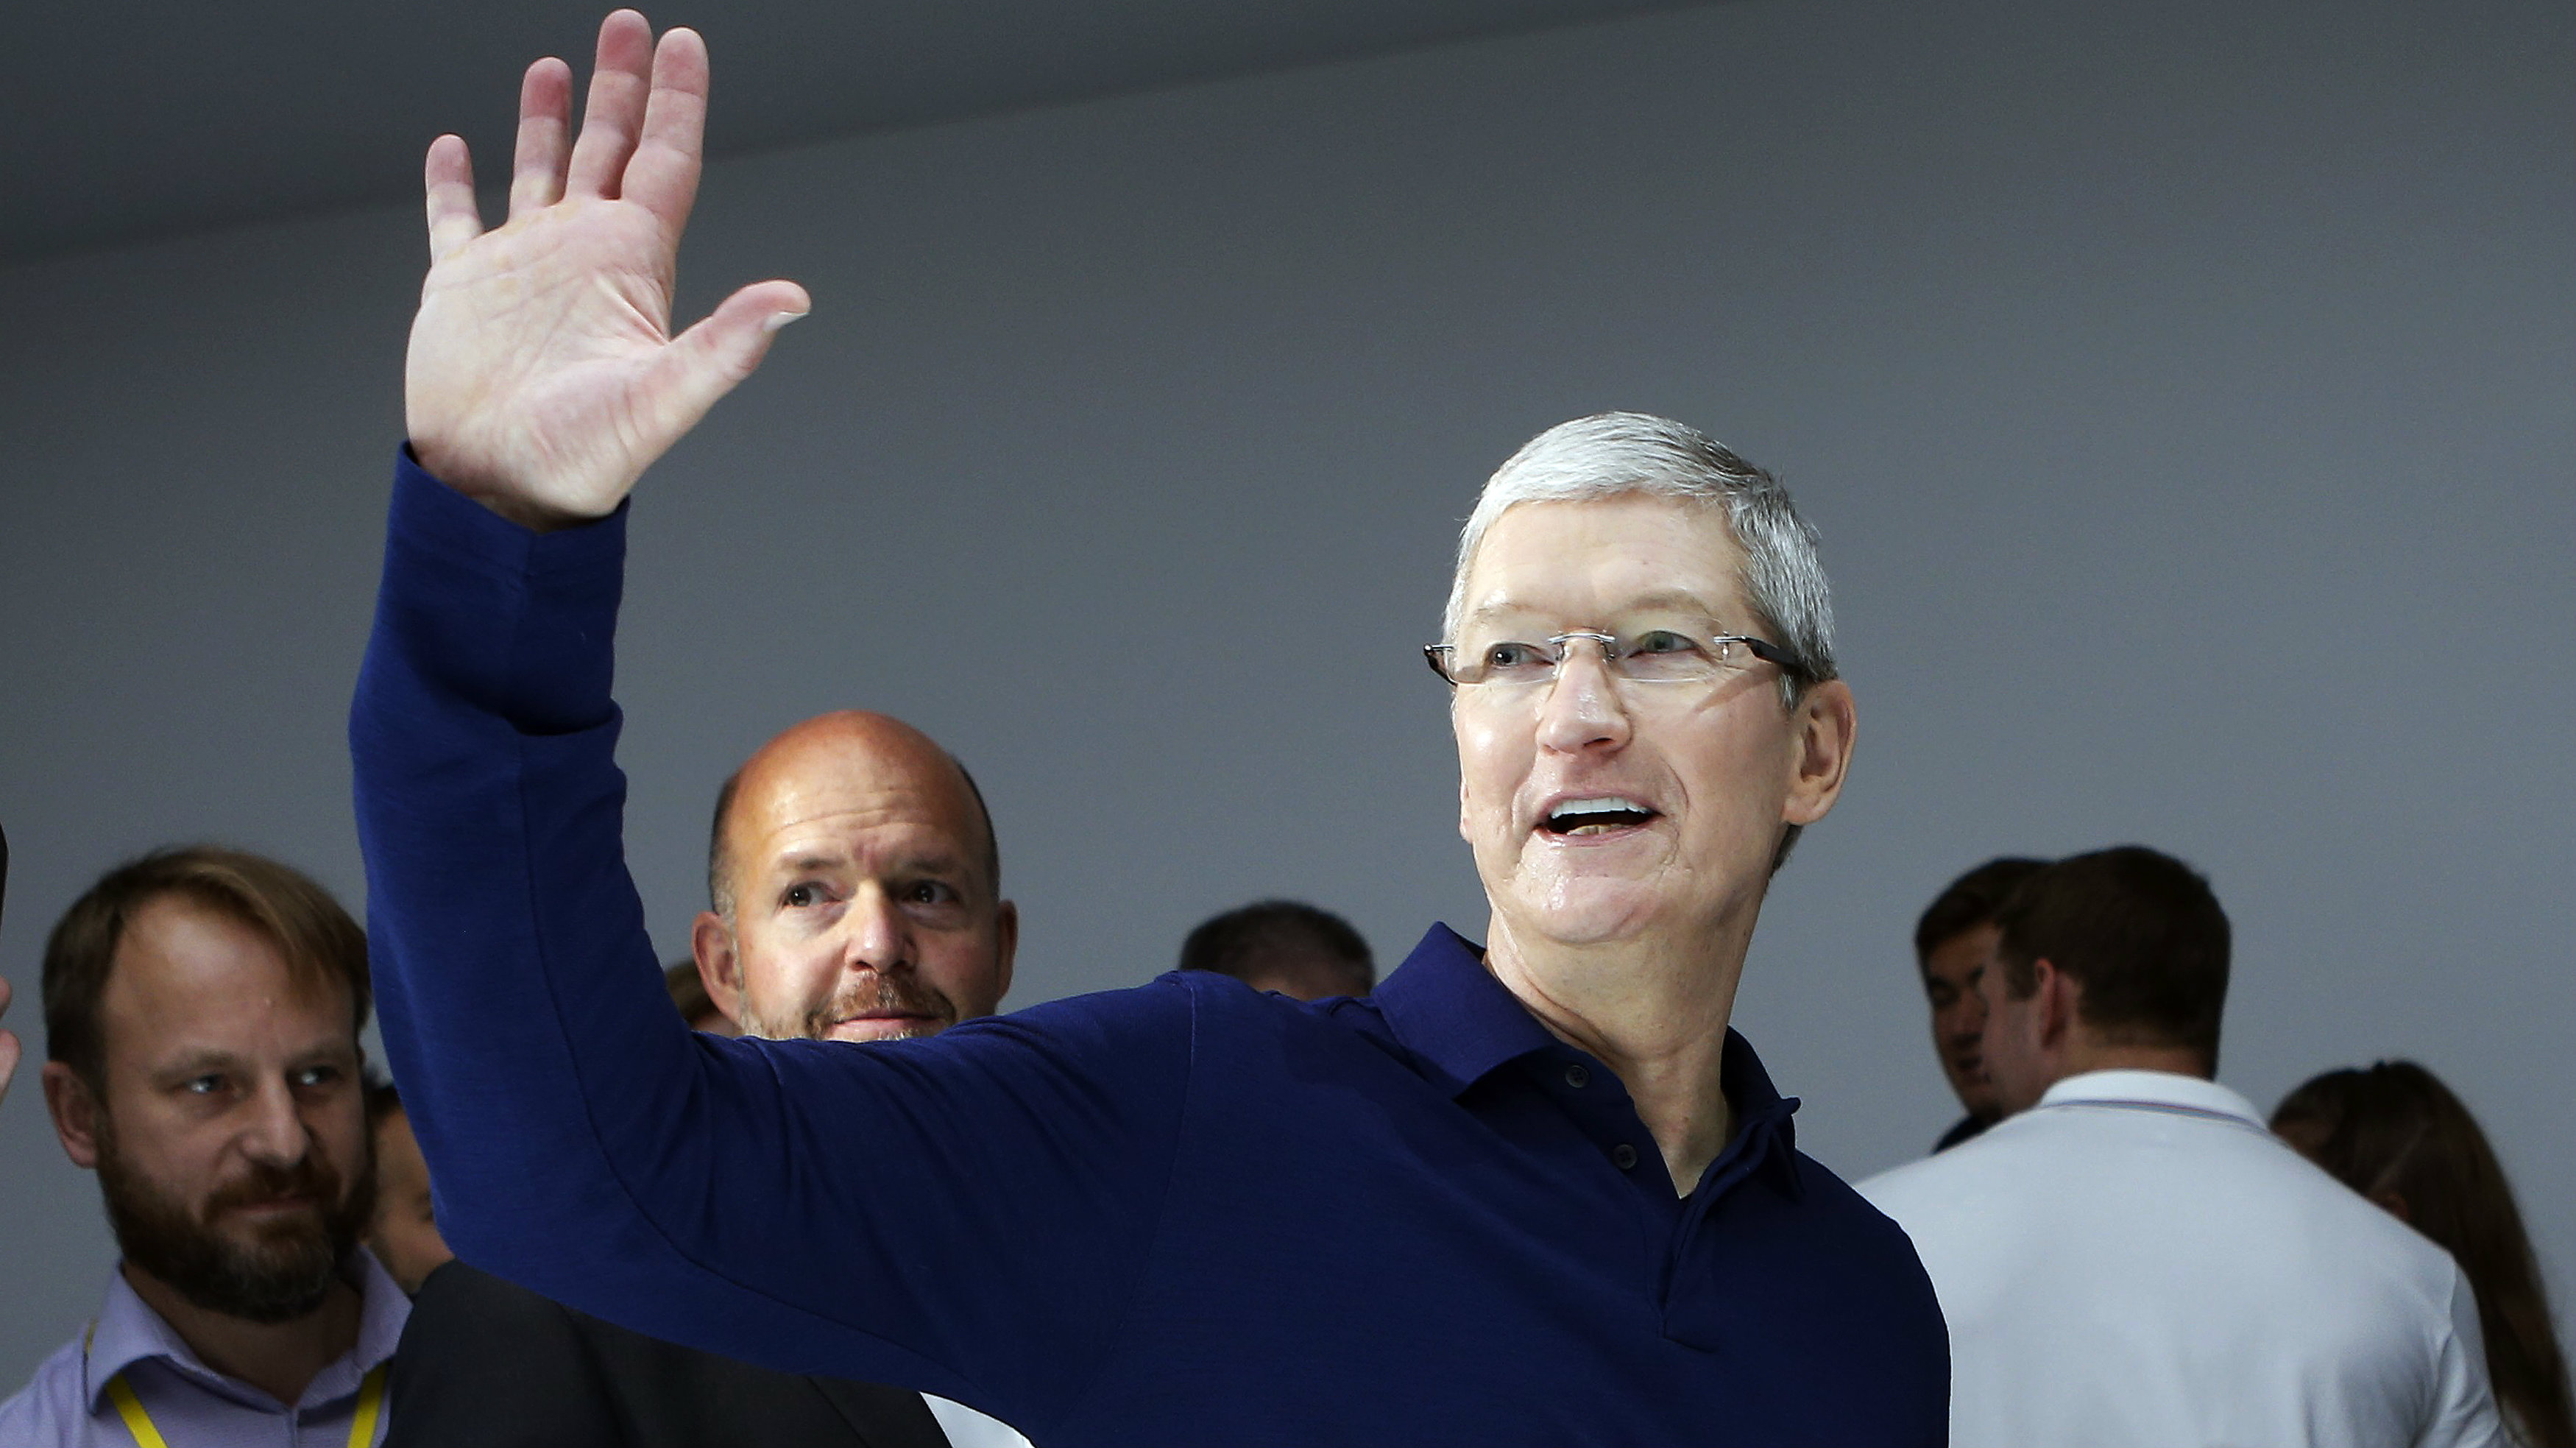 DATE IMPORTED:September 07, 2016Apple Inc CEO Tim Cook waves during an Apple media event in San Francisco, California, U.S.